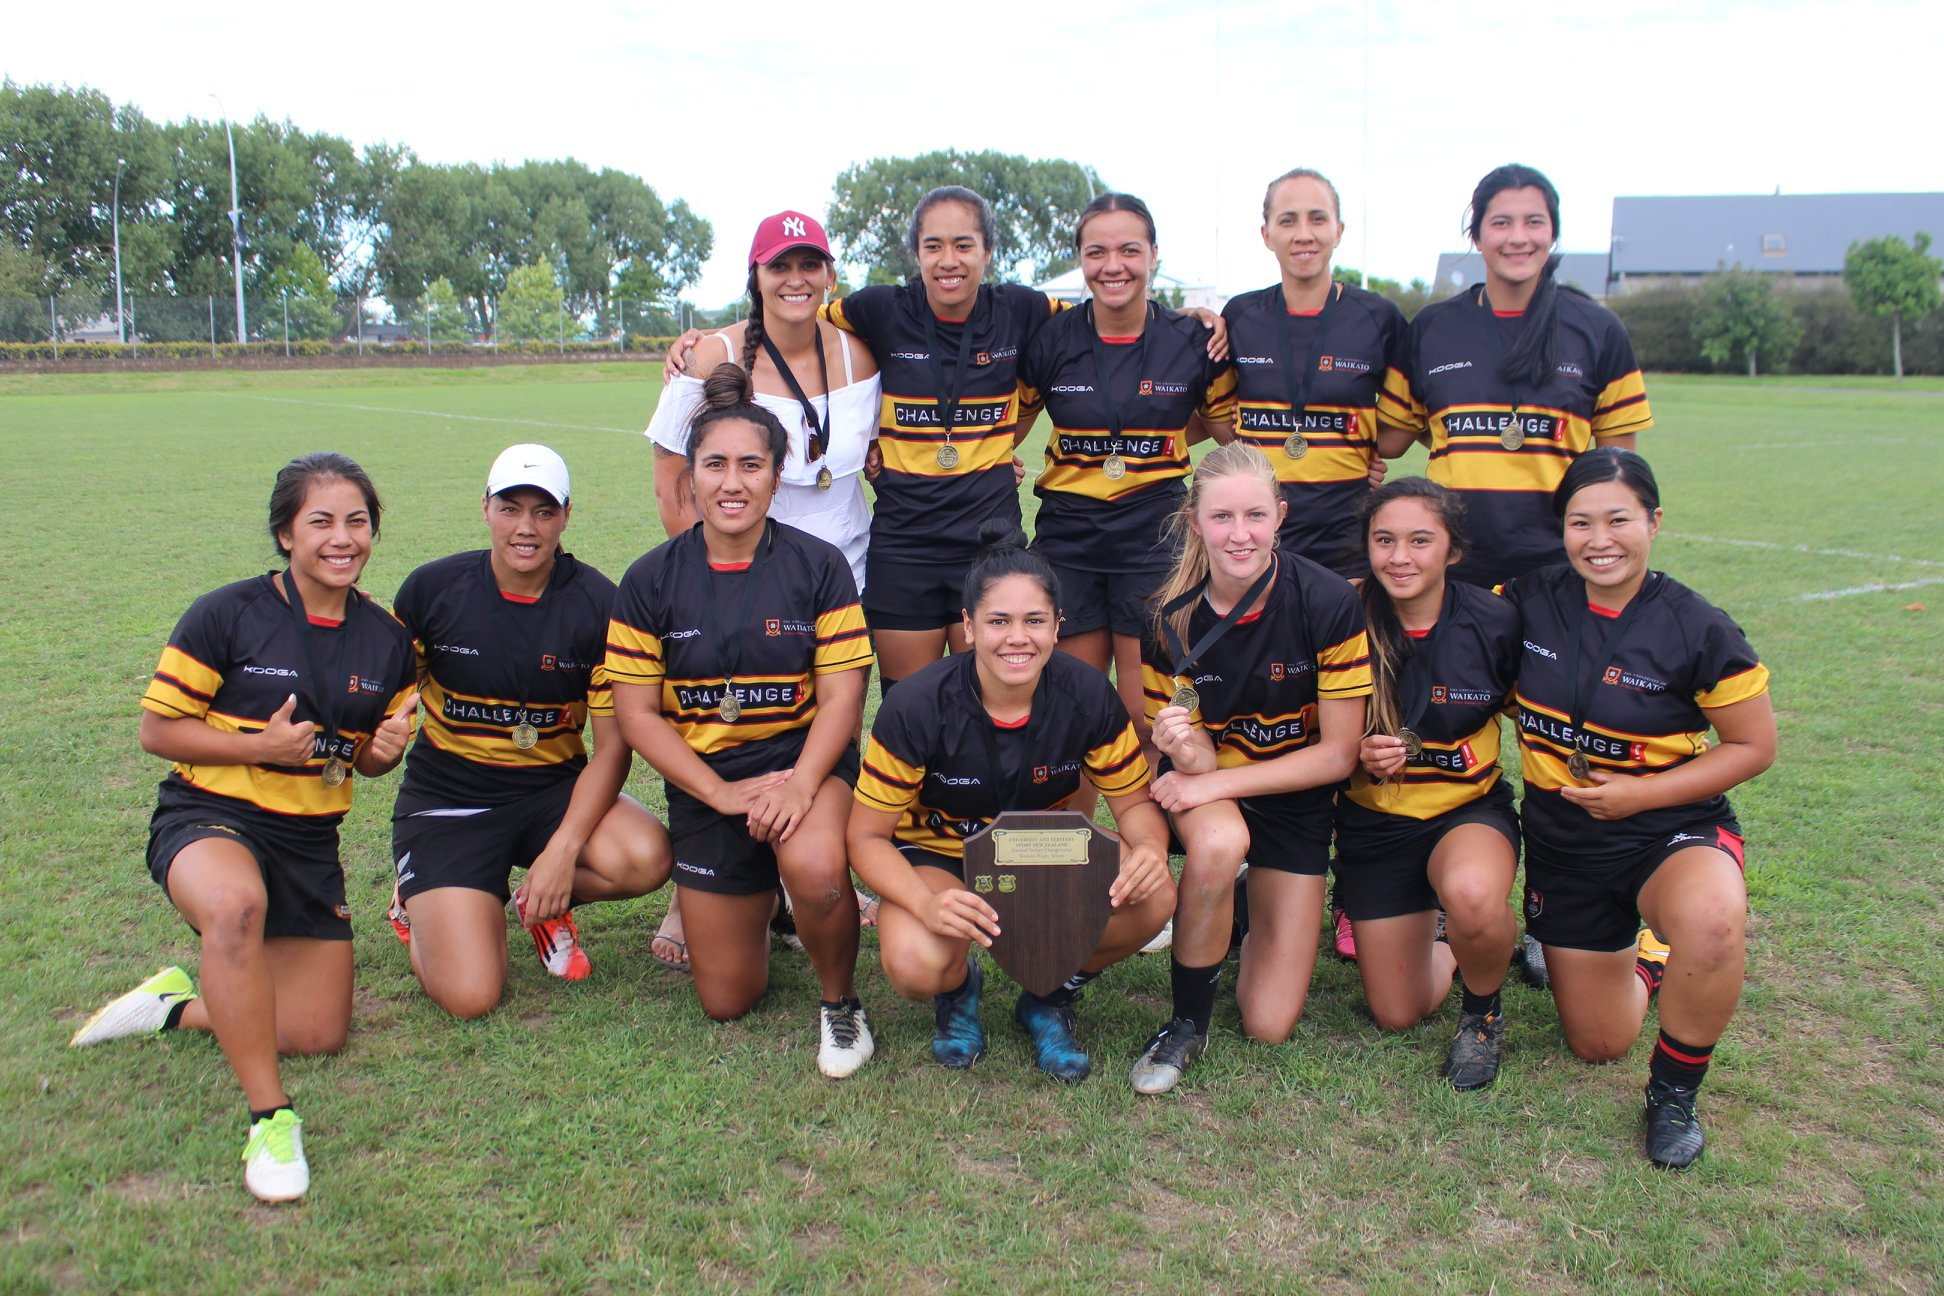 Winners are grinners.  Photo credit: Sport - University of Waikato, Facebook